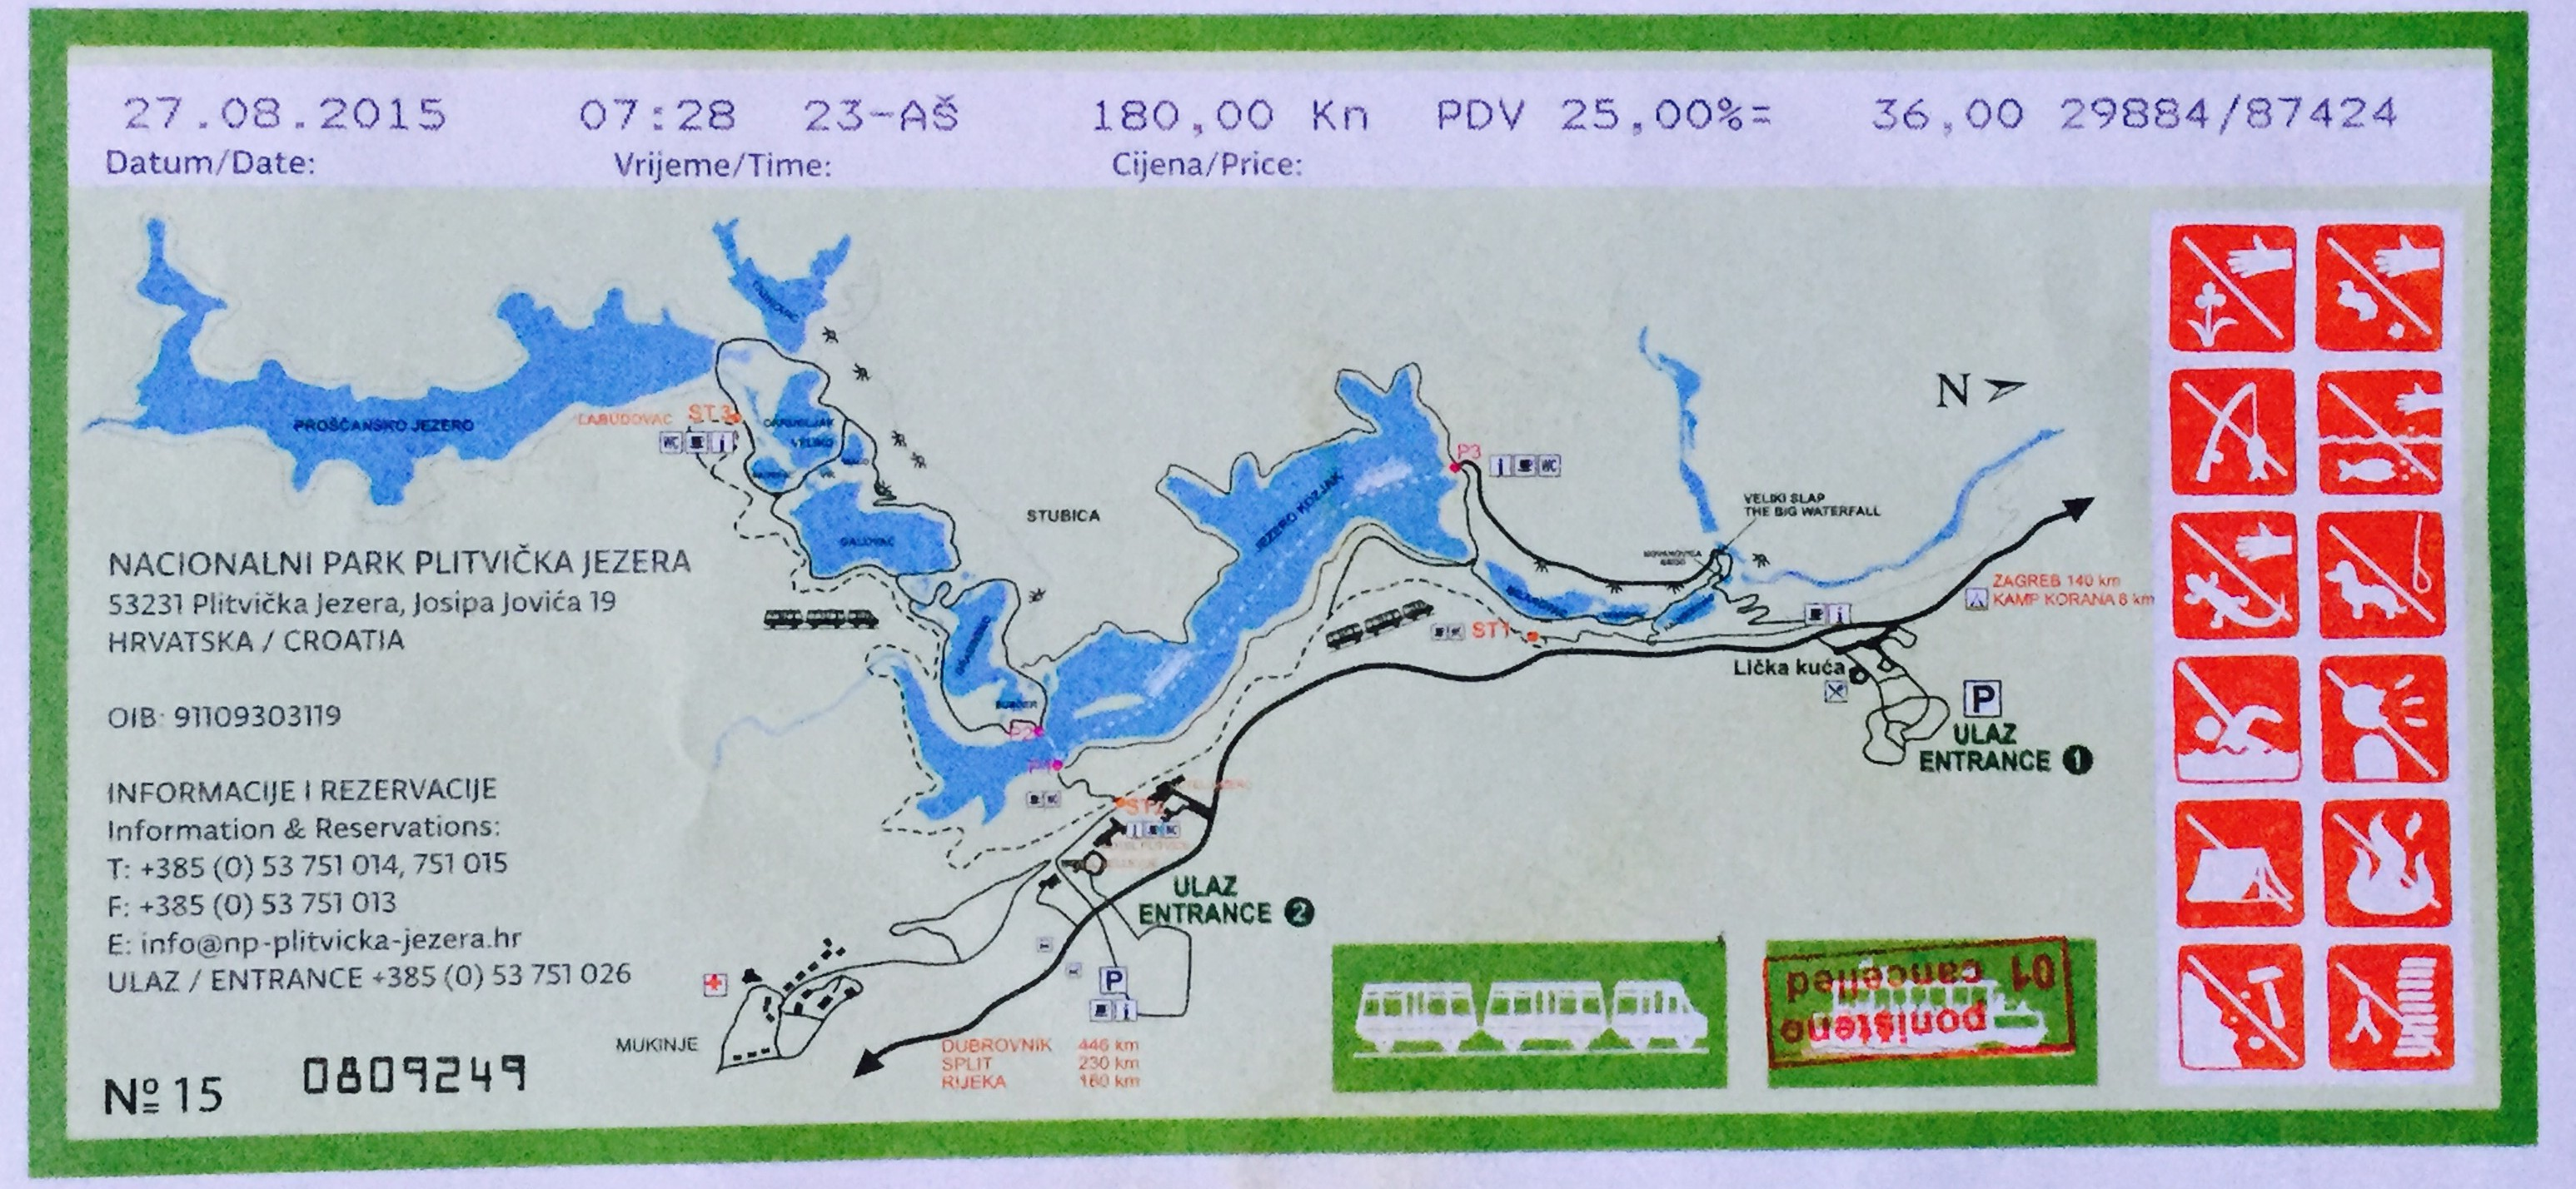 Plitvice Lakes National Park Map / Nacionalni Park Plitvicka Jezera Map